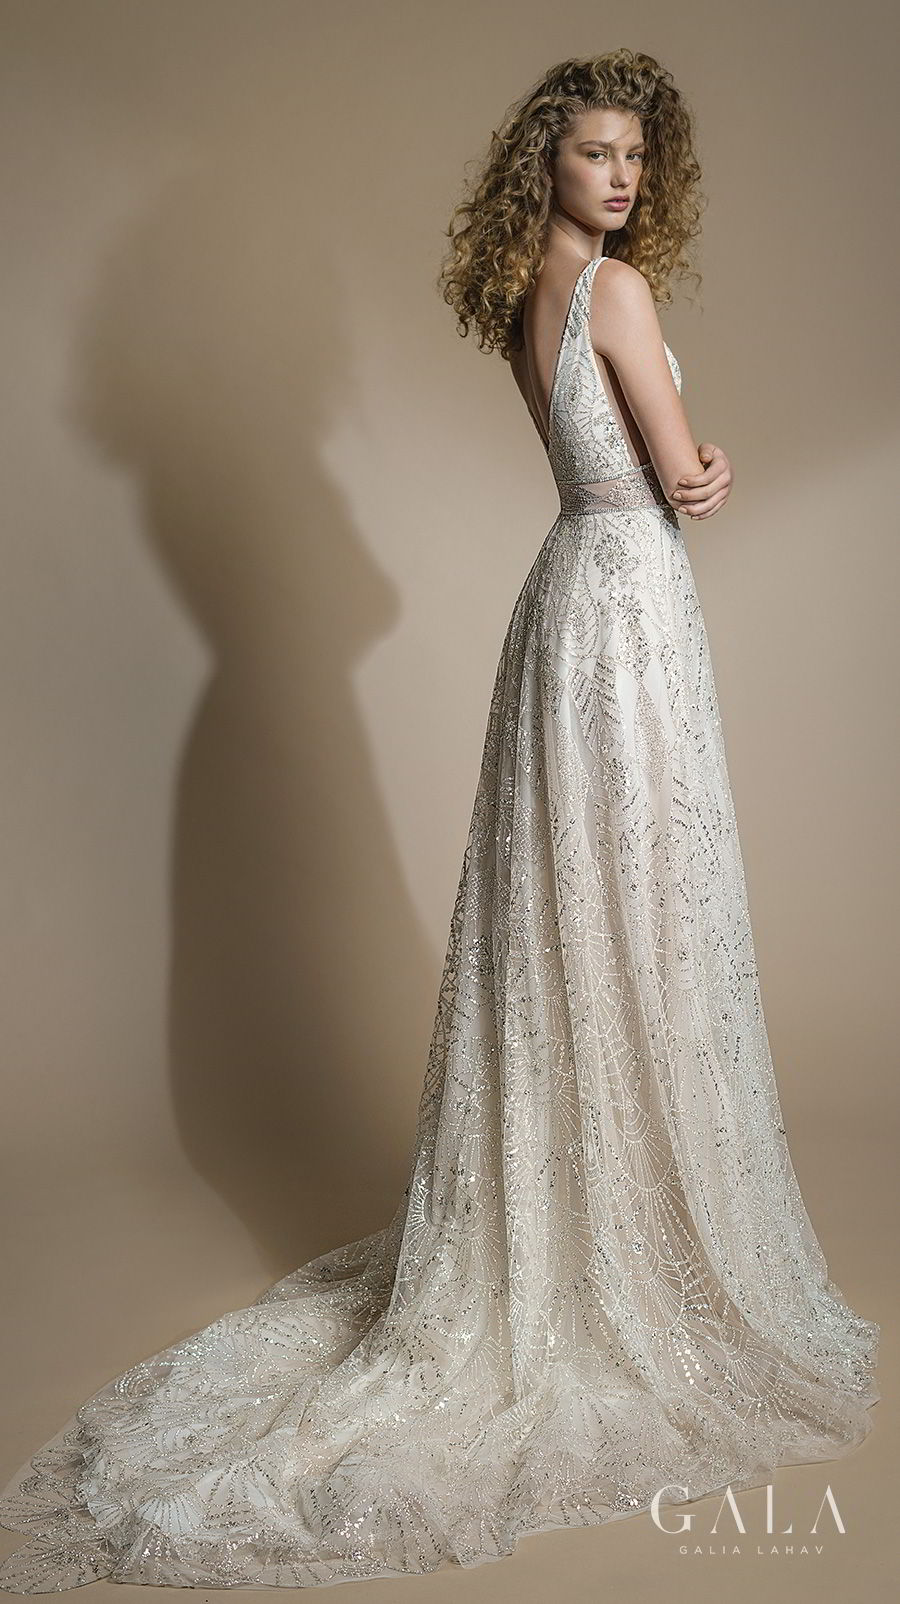 galia lahav gala 2019 bridal sleeveless with strap deep plunging v neck full embellishment elegant vintage romantic a line wedding dress v back chapel train (102) bv